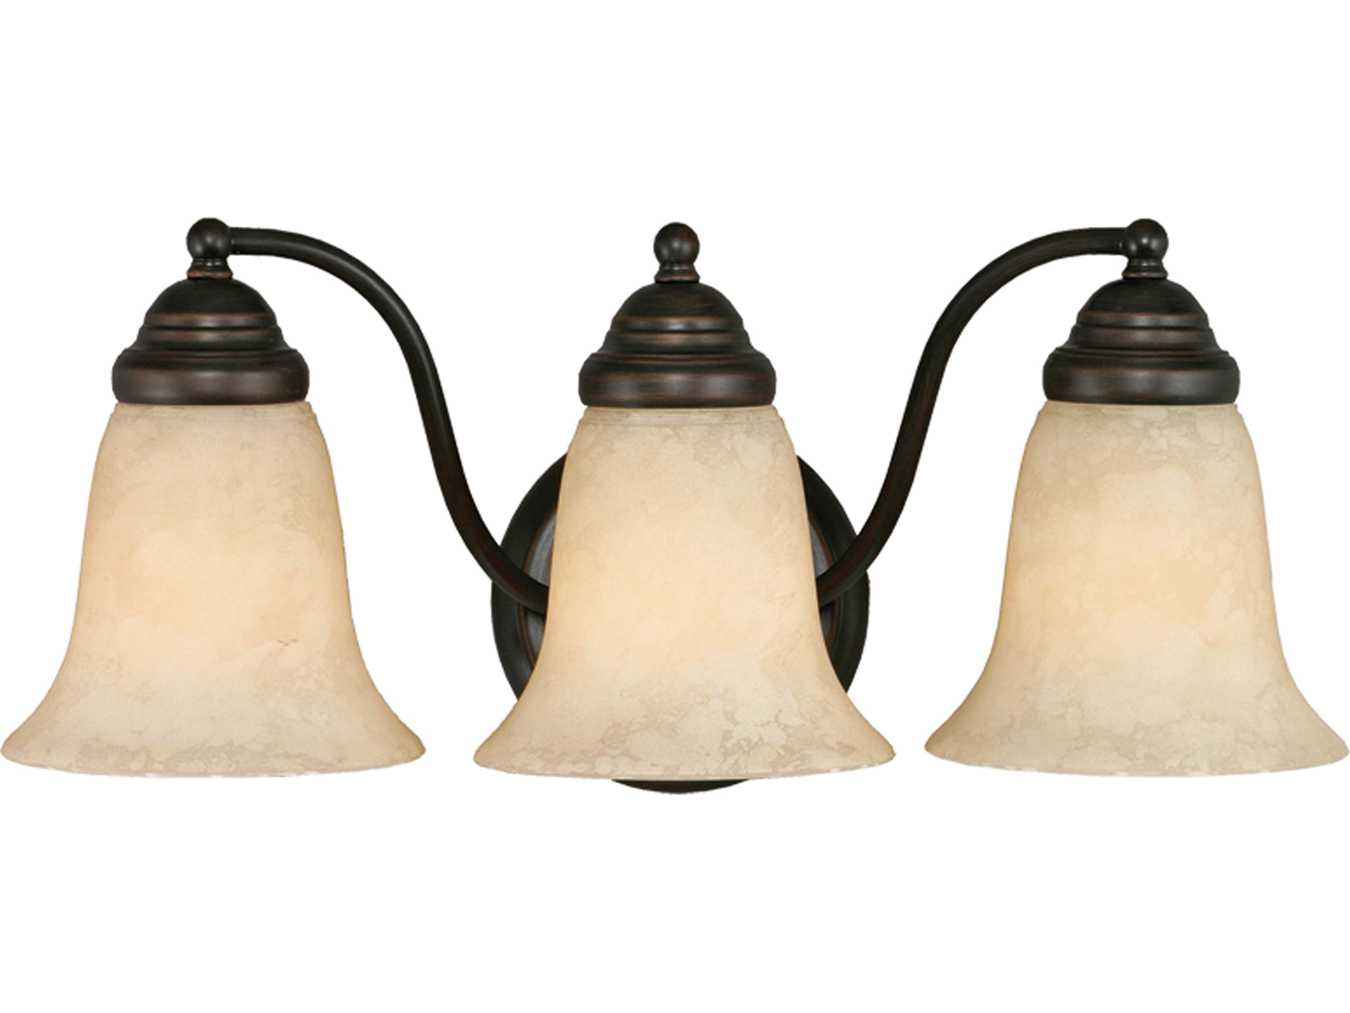 Vanity Lights Stone : Golden Lighting Centennial Rubbed Bronze Three-Light Vanity Light with Tea Stone Glass ...